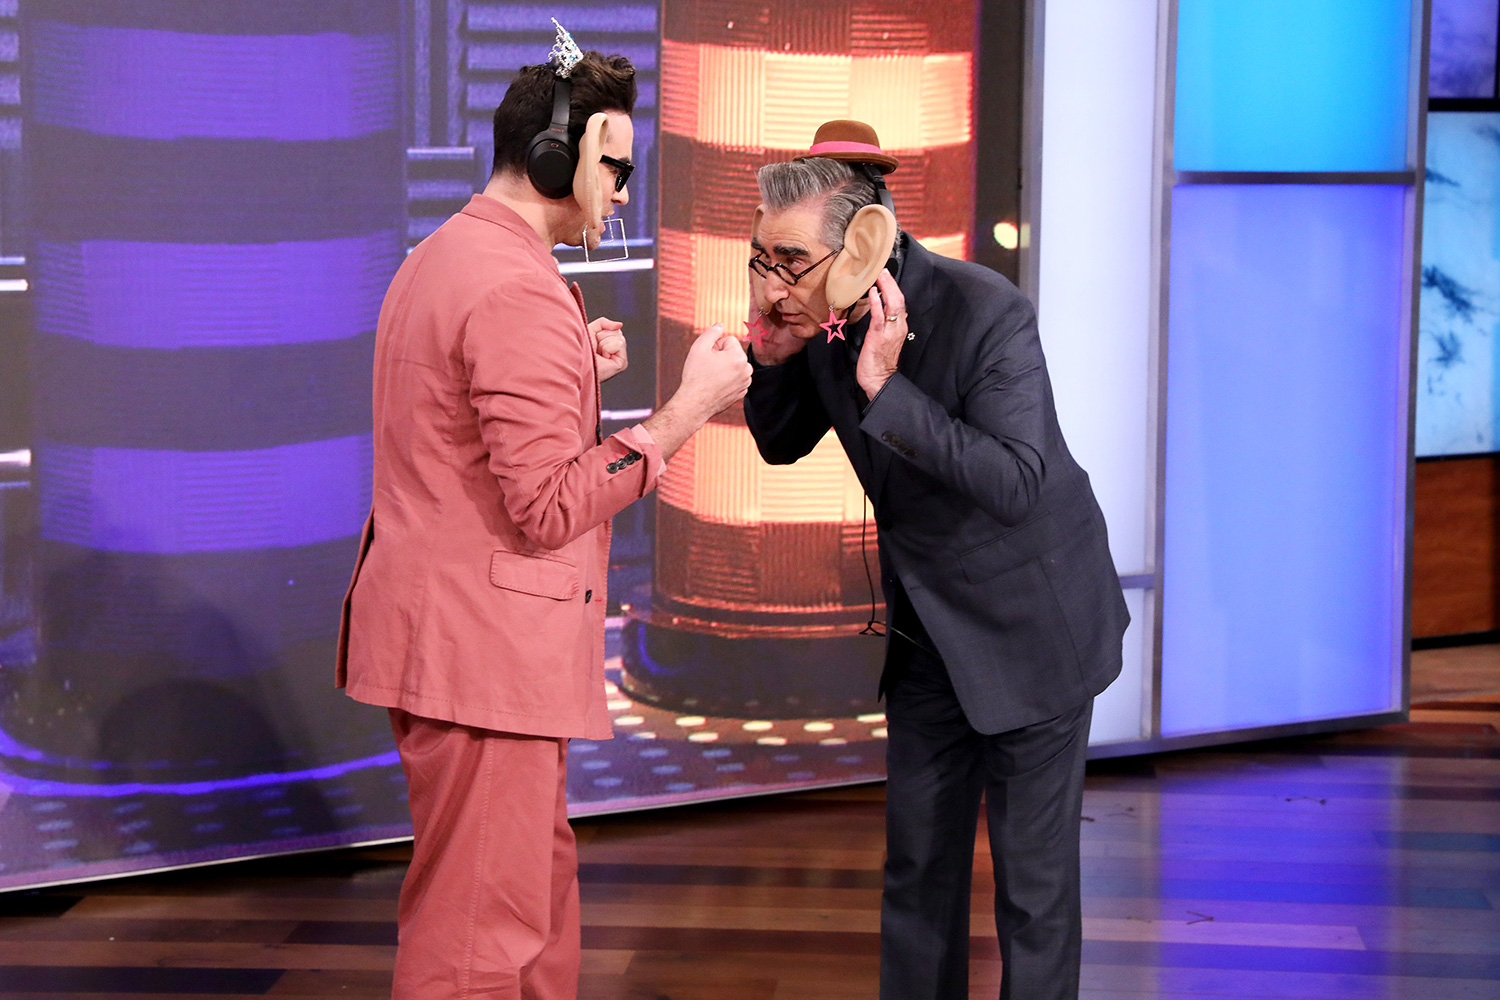 """Co-creators and stars of the critically acclaimed series """"Schitt's Creek,"""" Dan and Eugene Levy fill in as guest hosts on """"The Ellen DeGeneres Show"""" airing Friday, January 10th and kick off the show by giving fans life advice."""